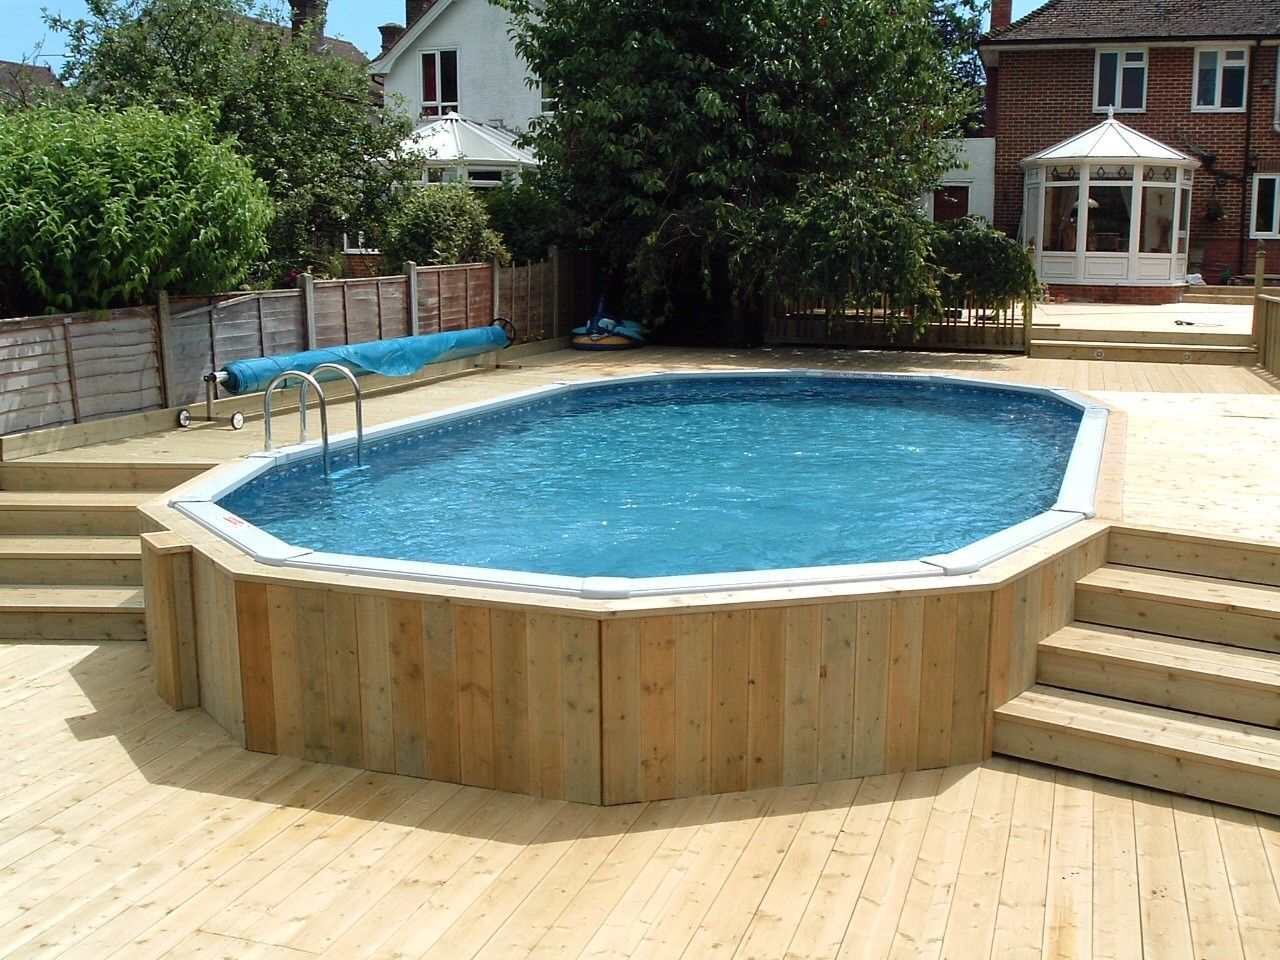 Jacuzzi Oval Pool 30 39 X 15 39 Aluminium Above Ground Pool With Decking